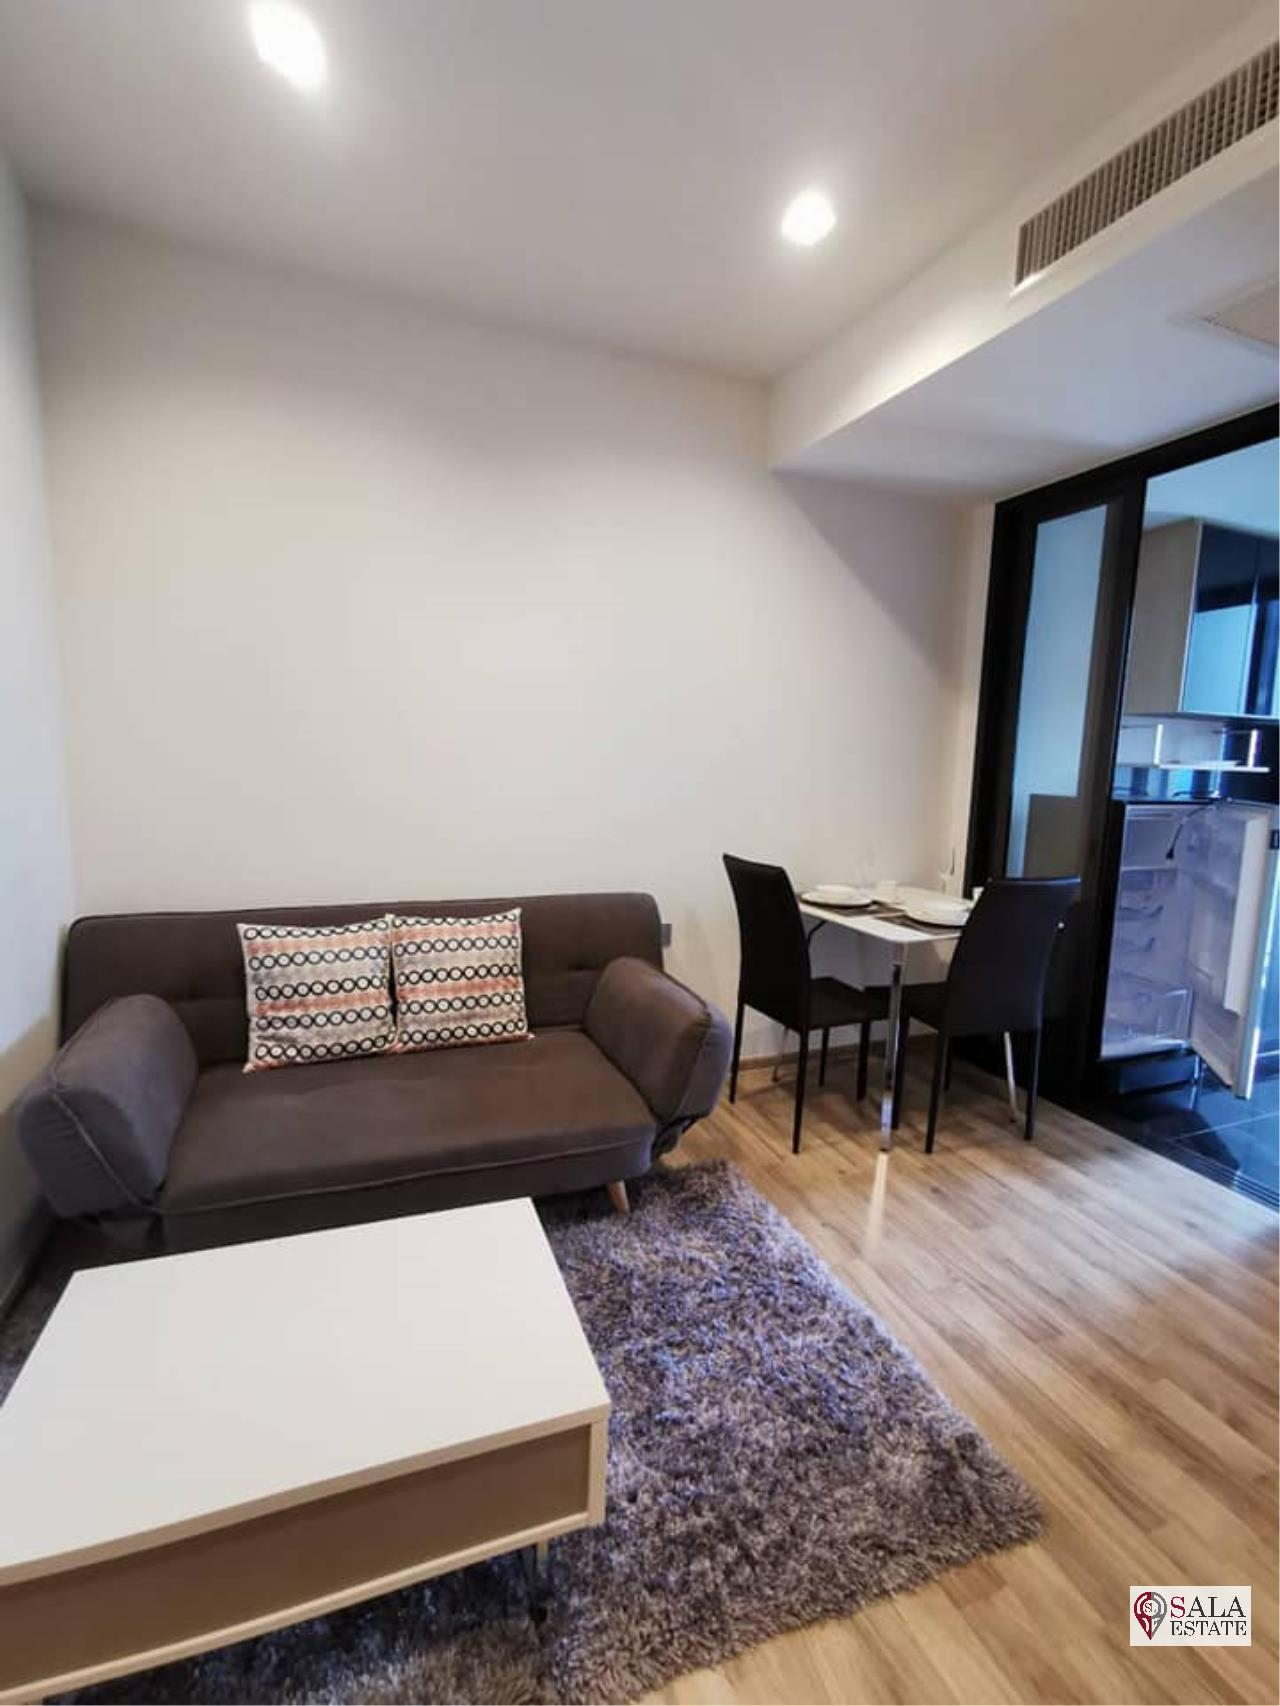 SALA ESTATE Agency's THE LINE JATUJAK MOCHIT – BTS MOCHIT, 1 BEDROOM 1 BATHROOM, FULLY FURNISHED, CITY VIEW 2